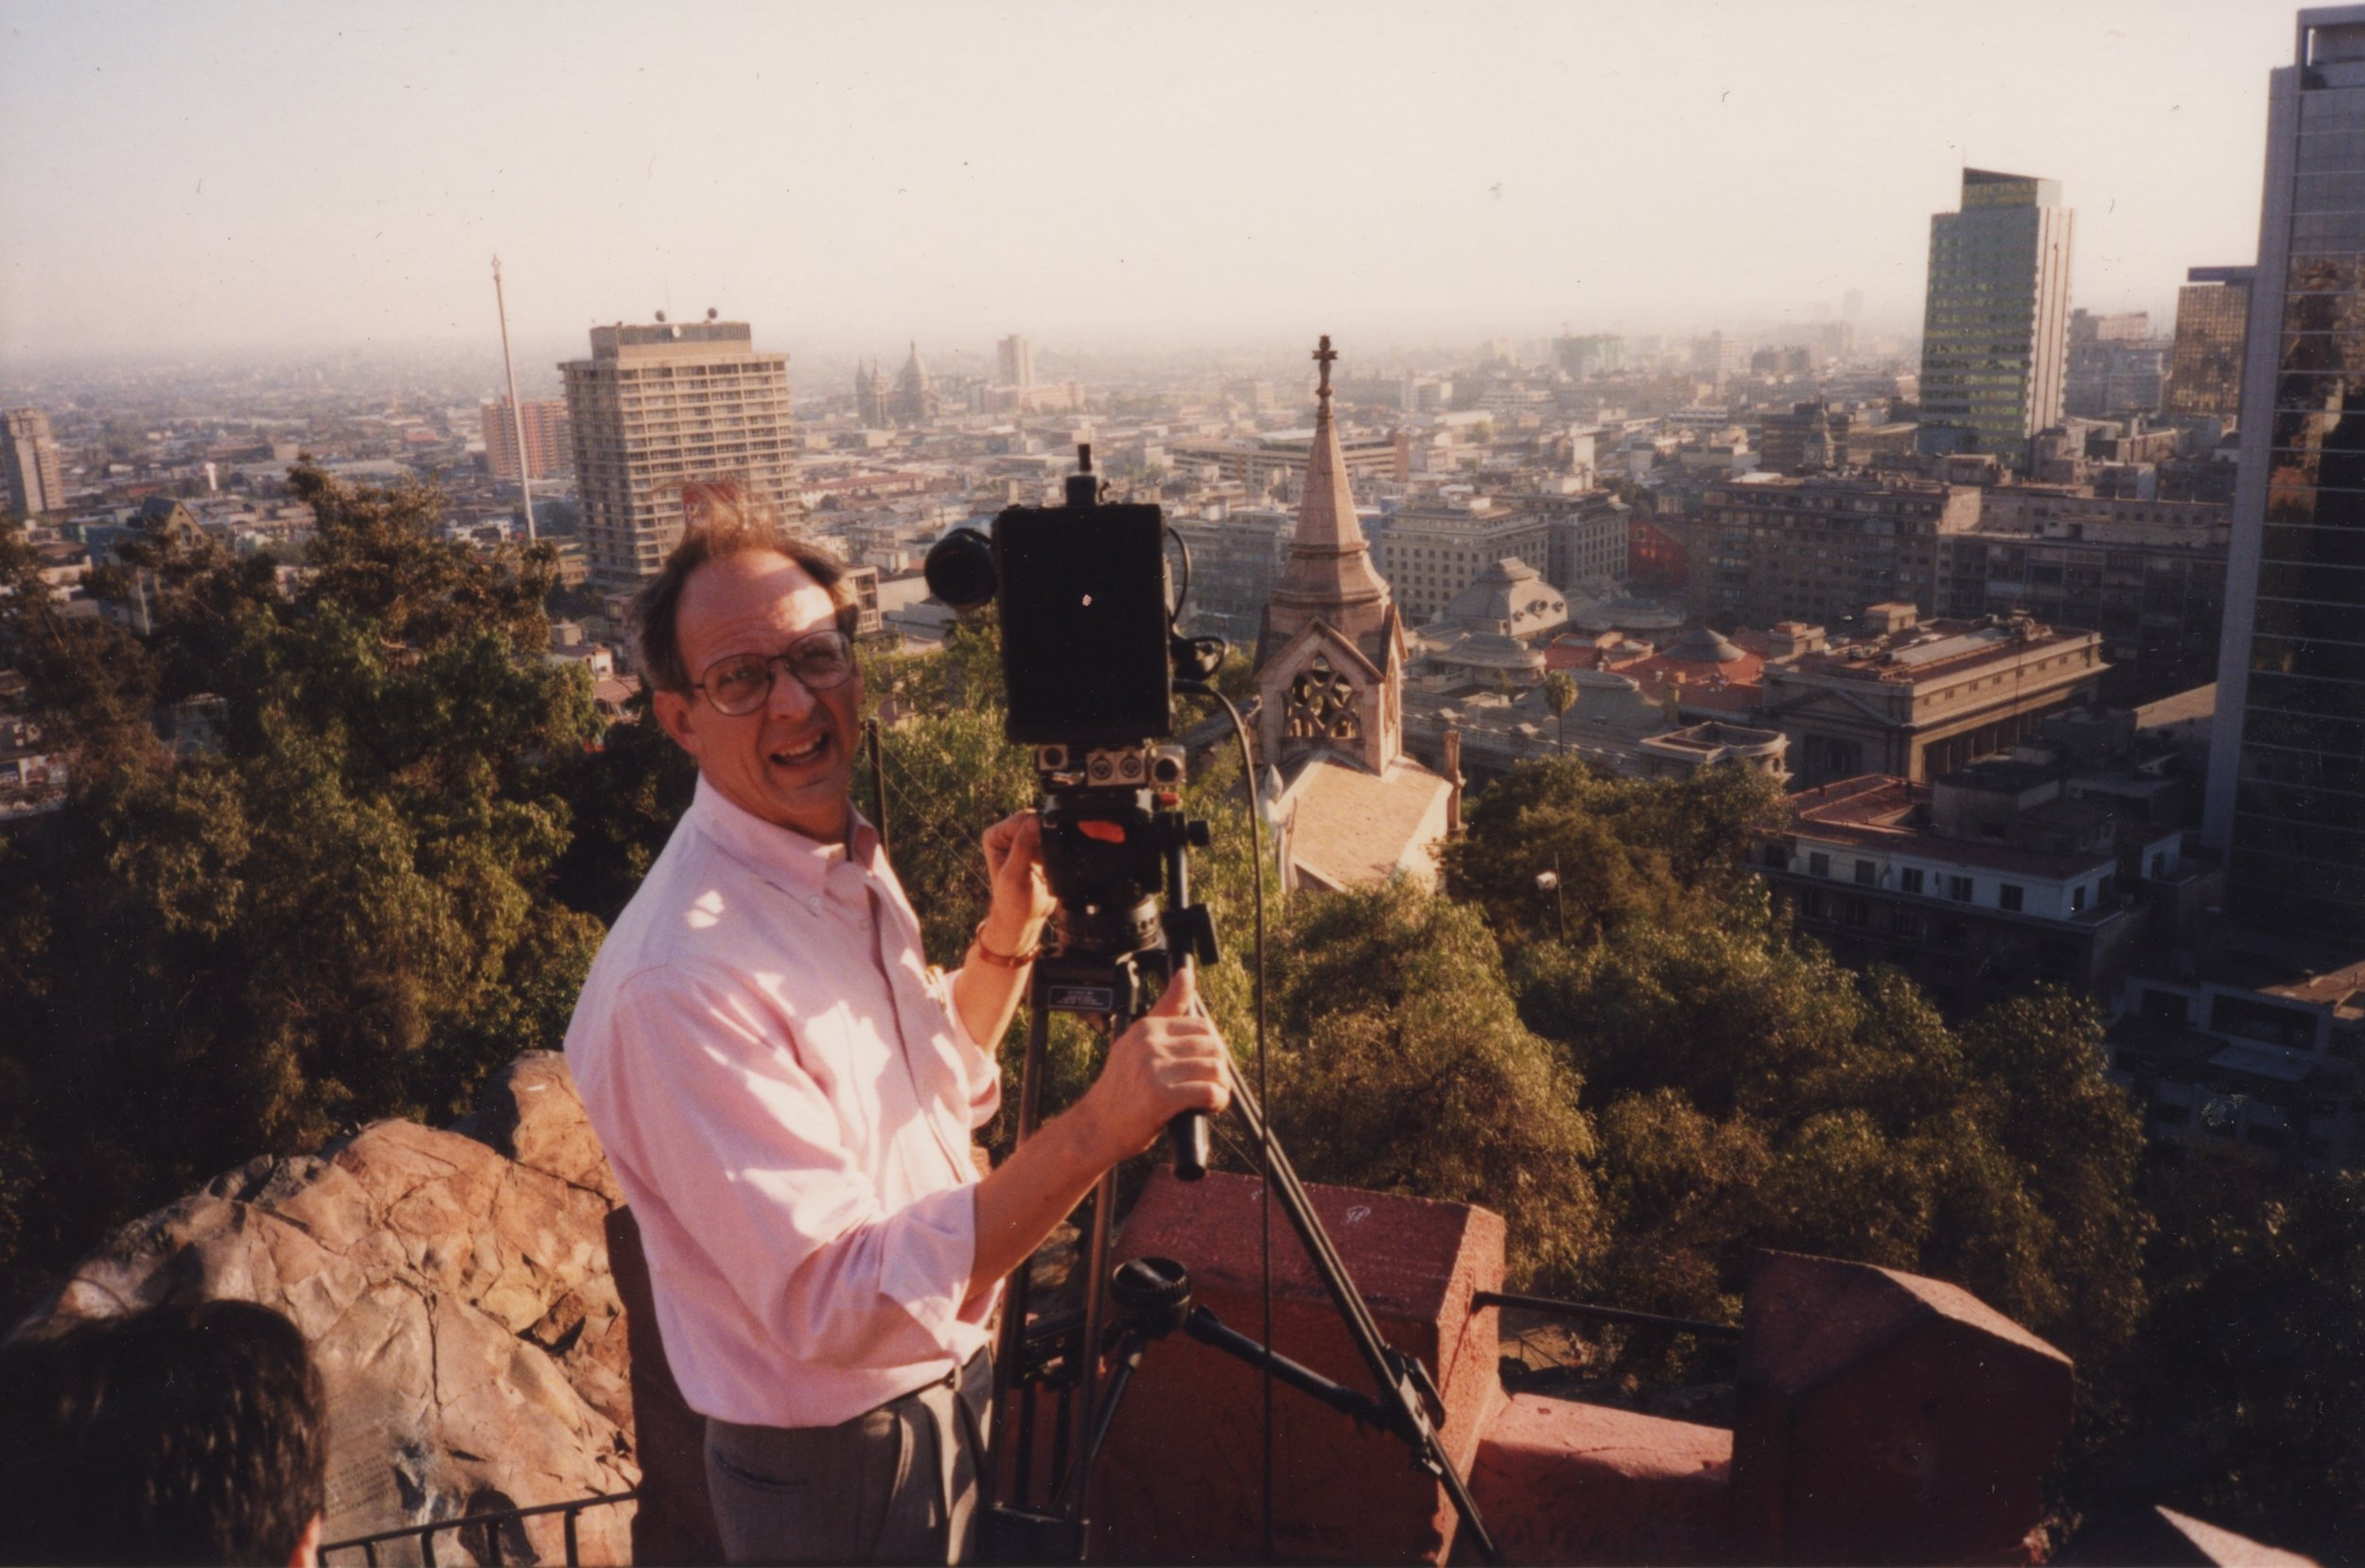 Steve York on location in Chile, 1998.